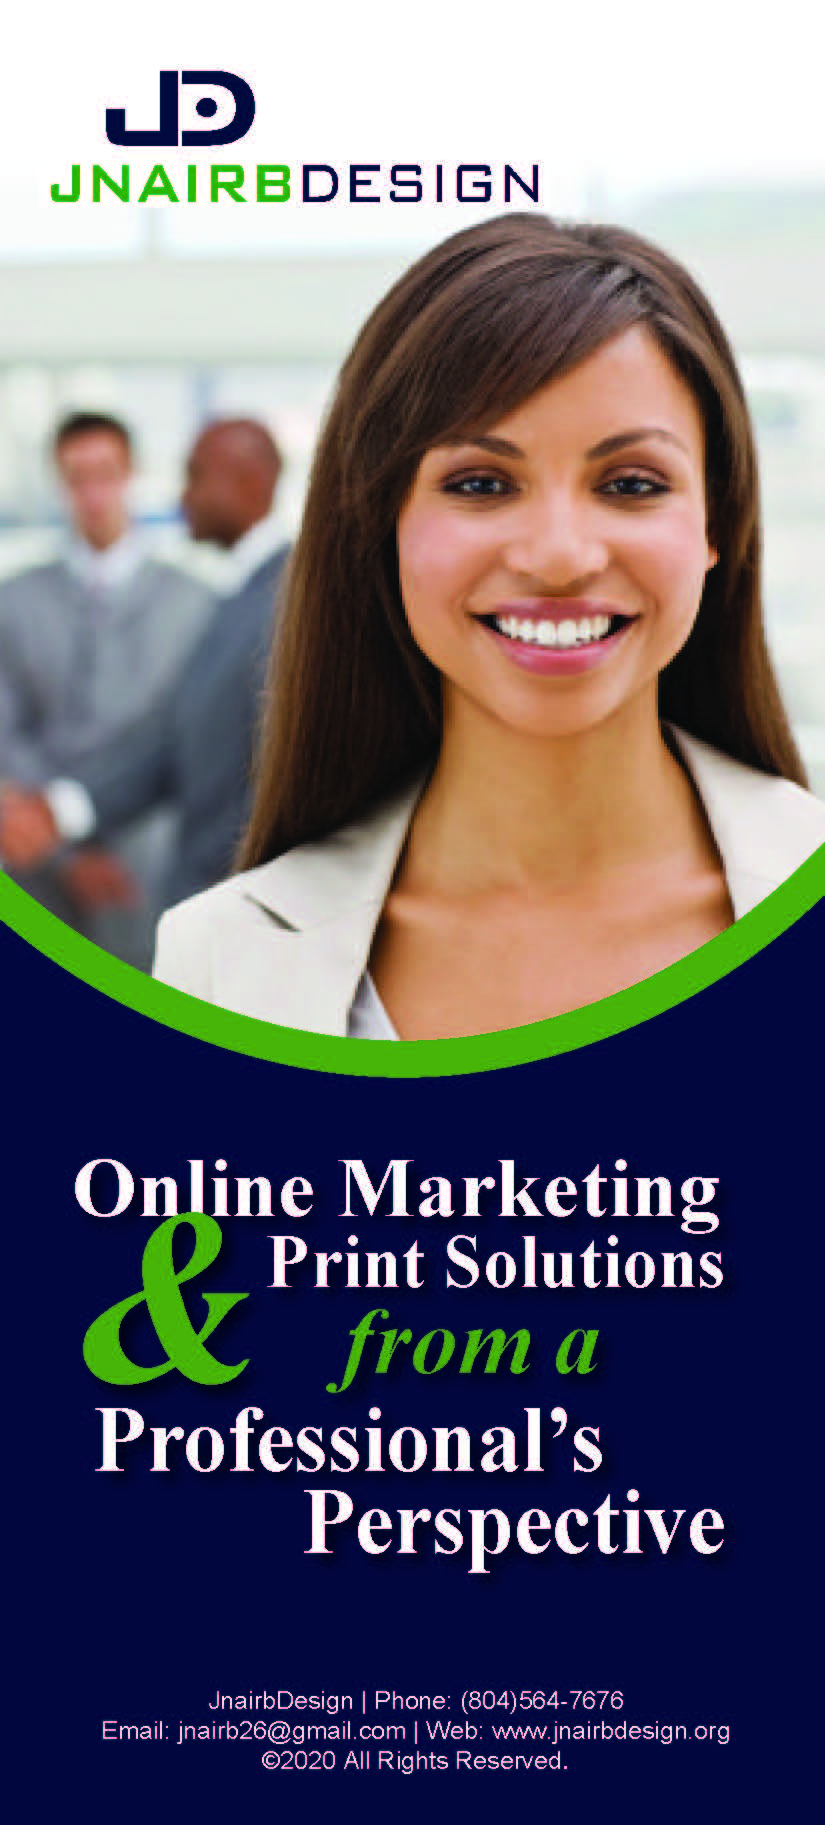 Online Marketing & Print Solutions from a Professional's Perspective